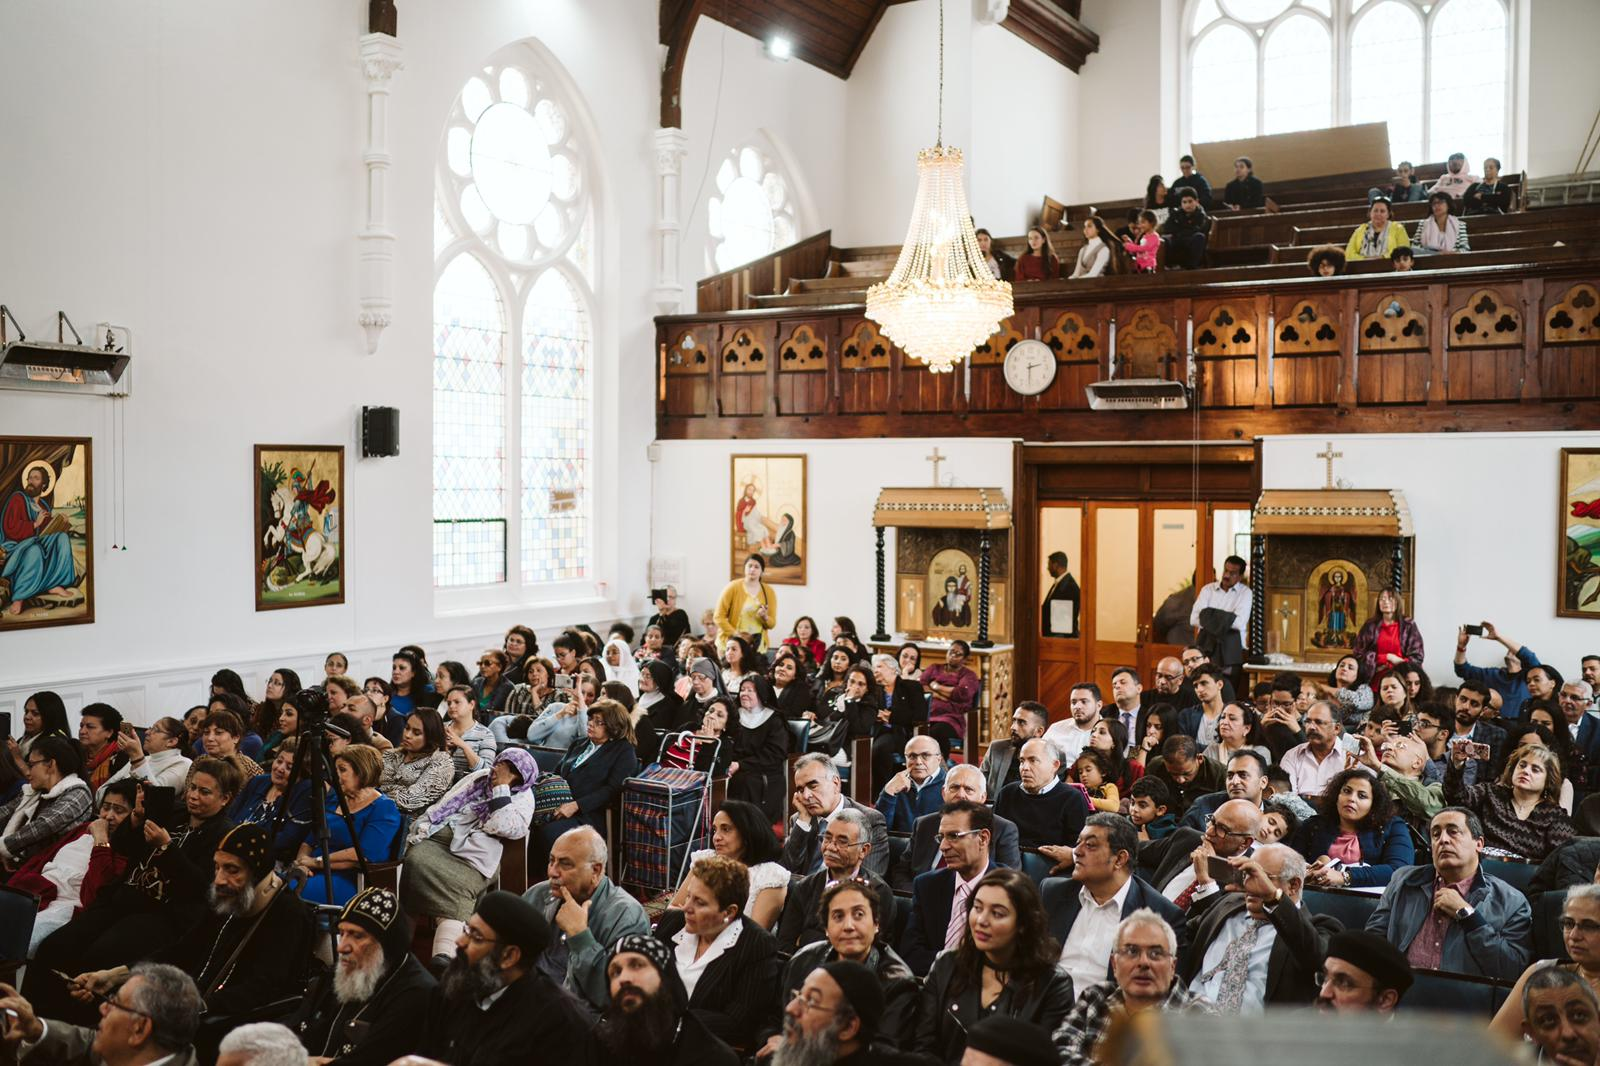 The-20th-anniversary-of-the-consecration-of-Archangel-Michael-and-St-Bishoy's-Church-04